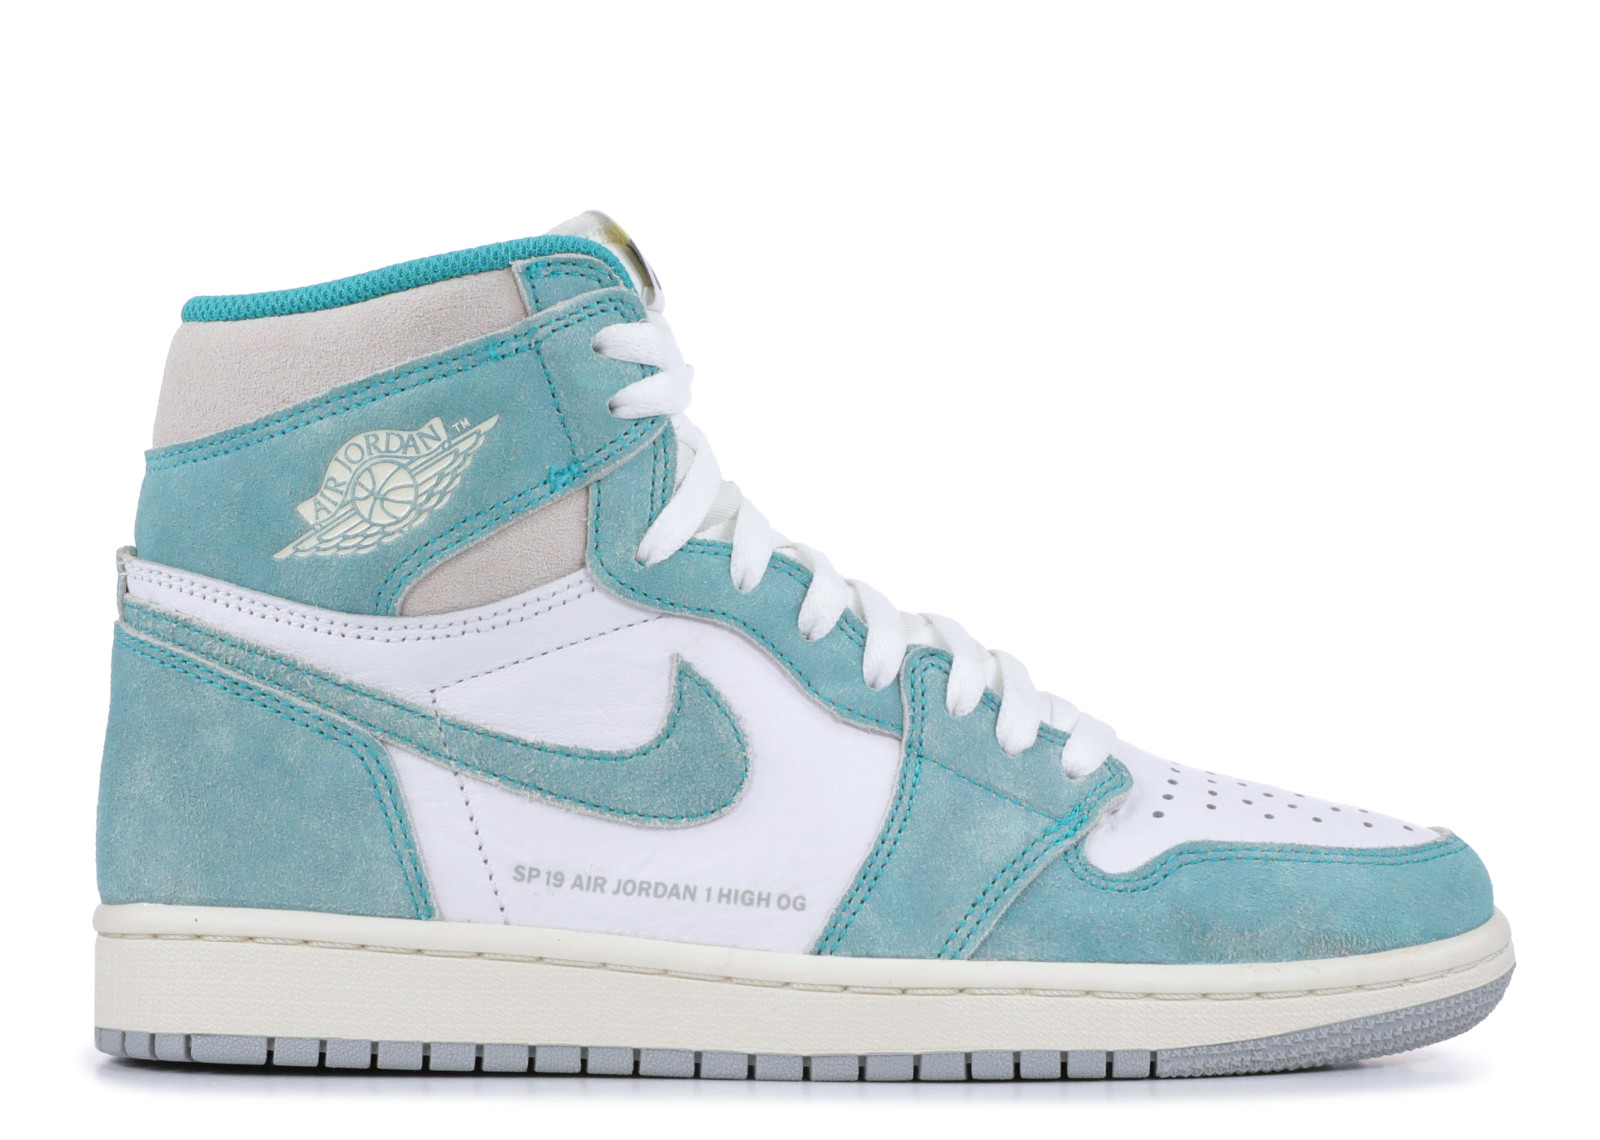 Air Jordan Air Jordan 1 Retro High Og Turbo Green 555088 311